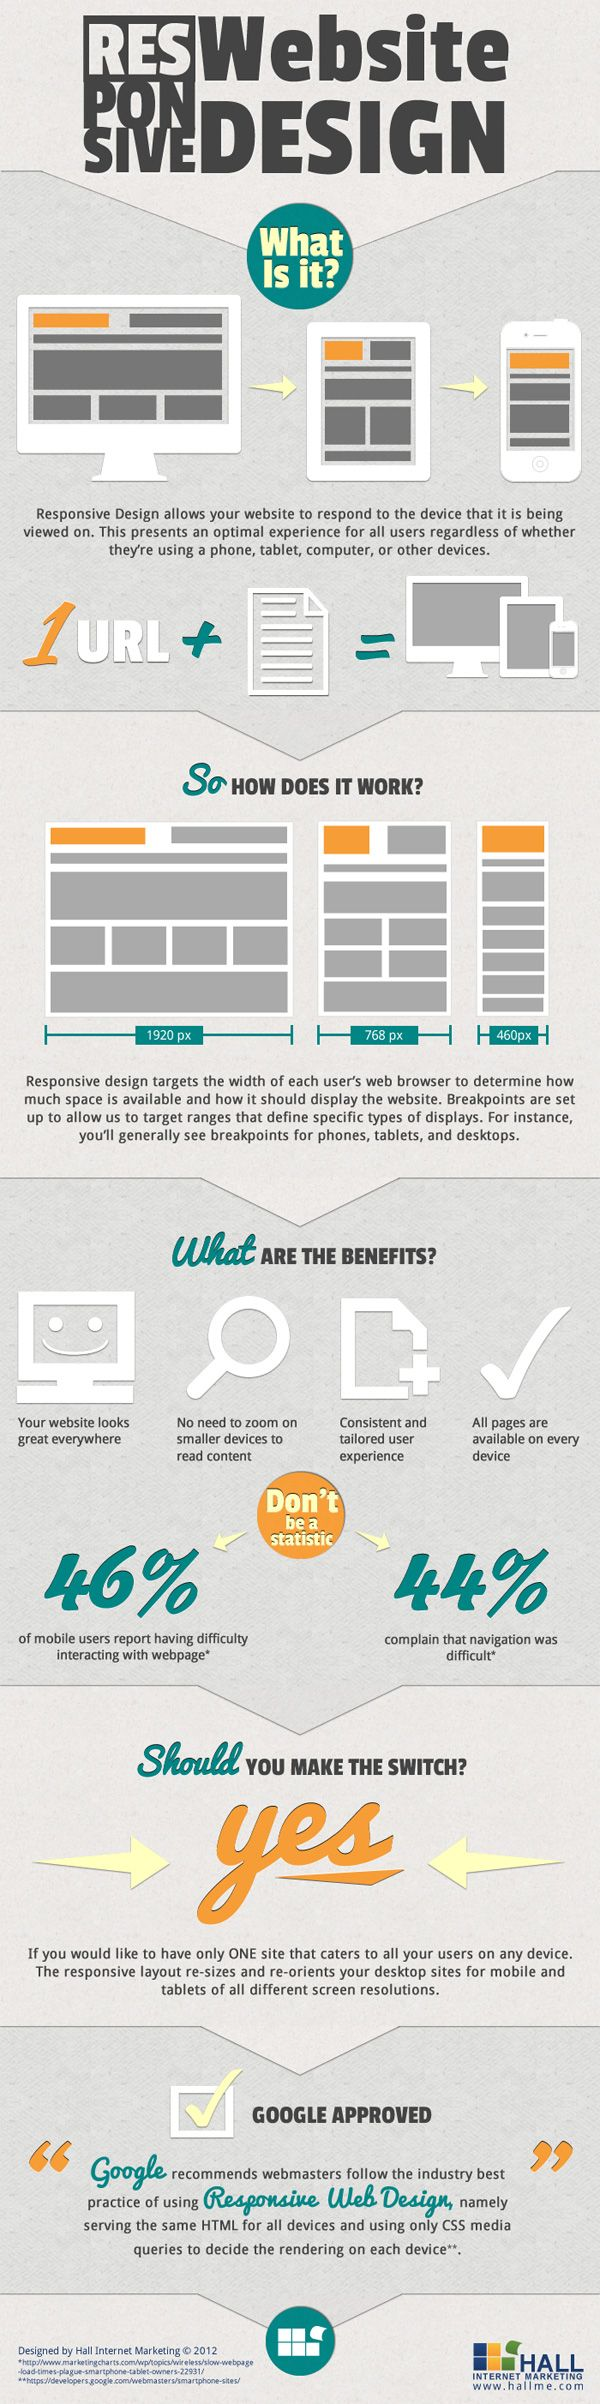 Responsive Website Design - What Is It? (Infographic)